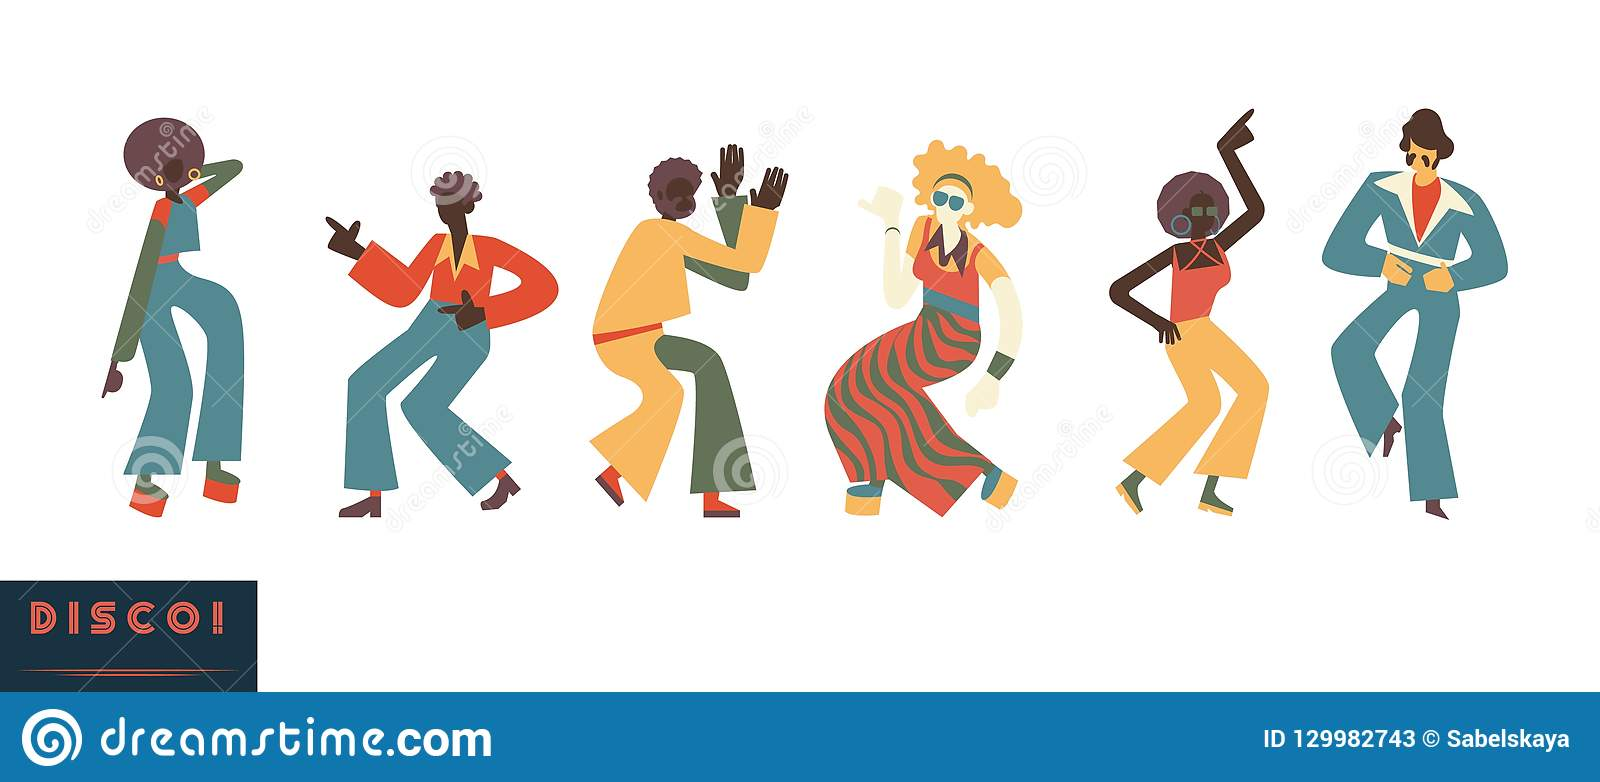 Disco Dancing People Vector Illustration Set With Men And Women With.